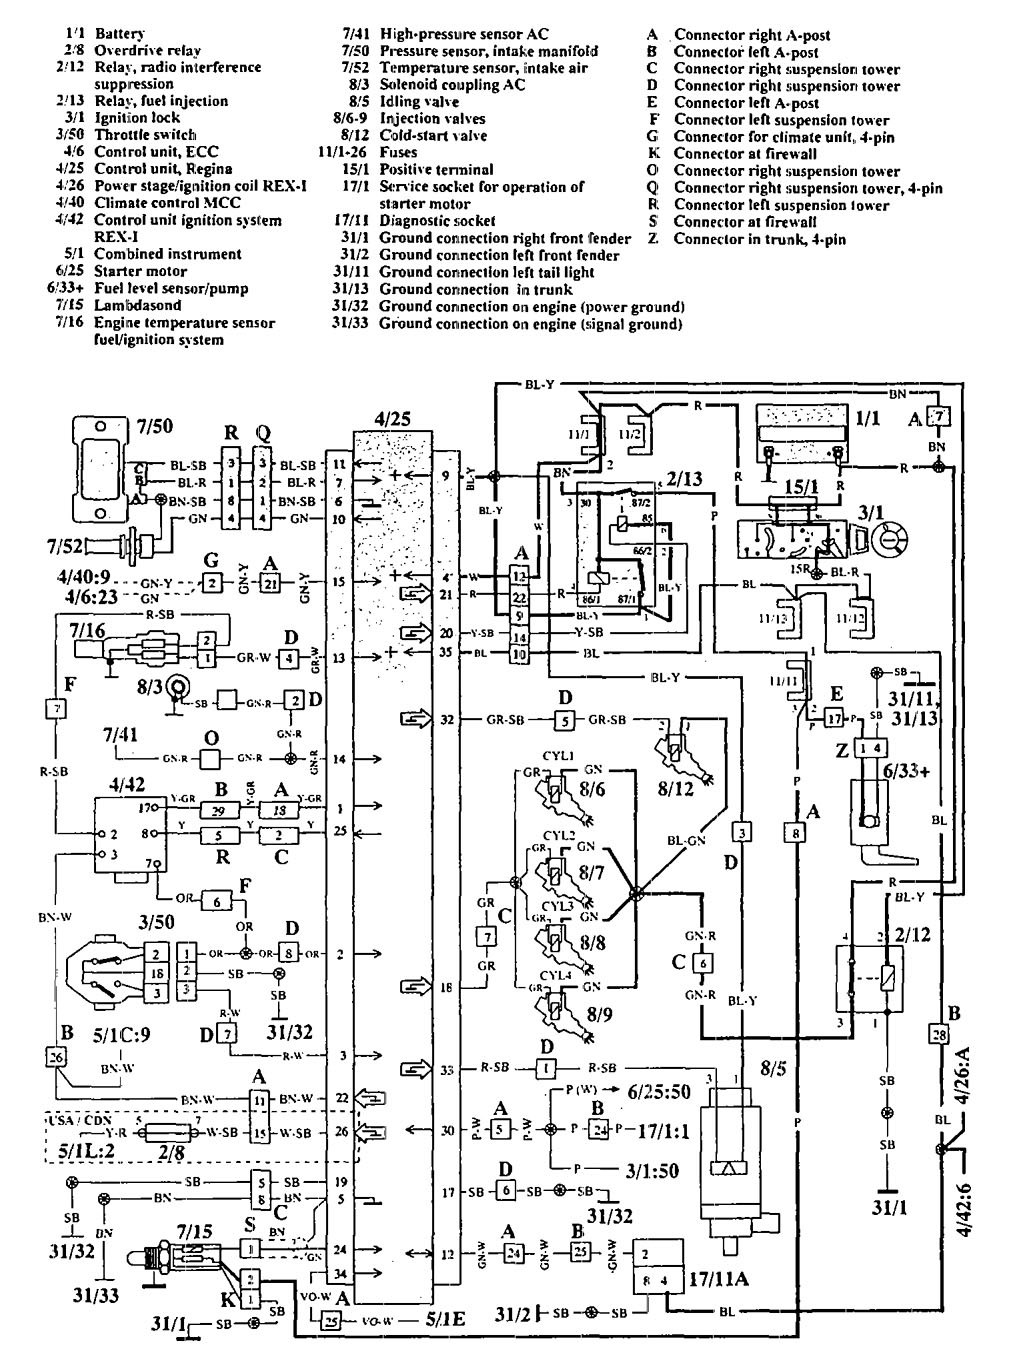 small resolution of 1992 940 gl wiring diagram manual e book asco 940 wiring diagram